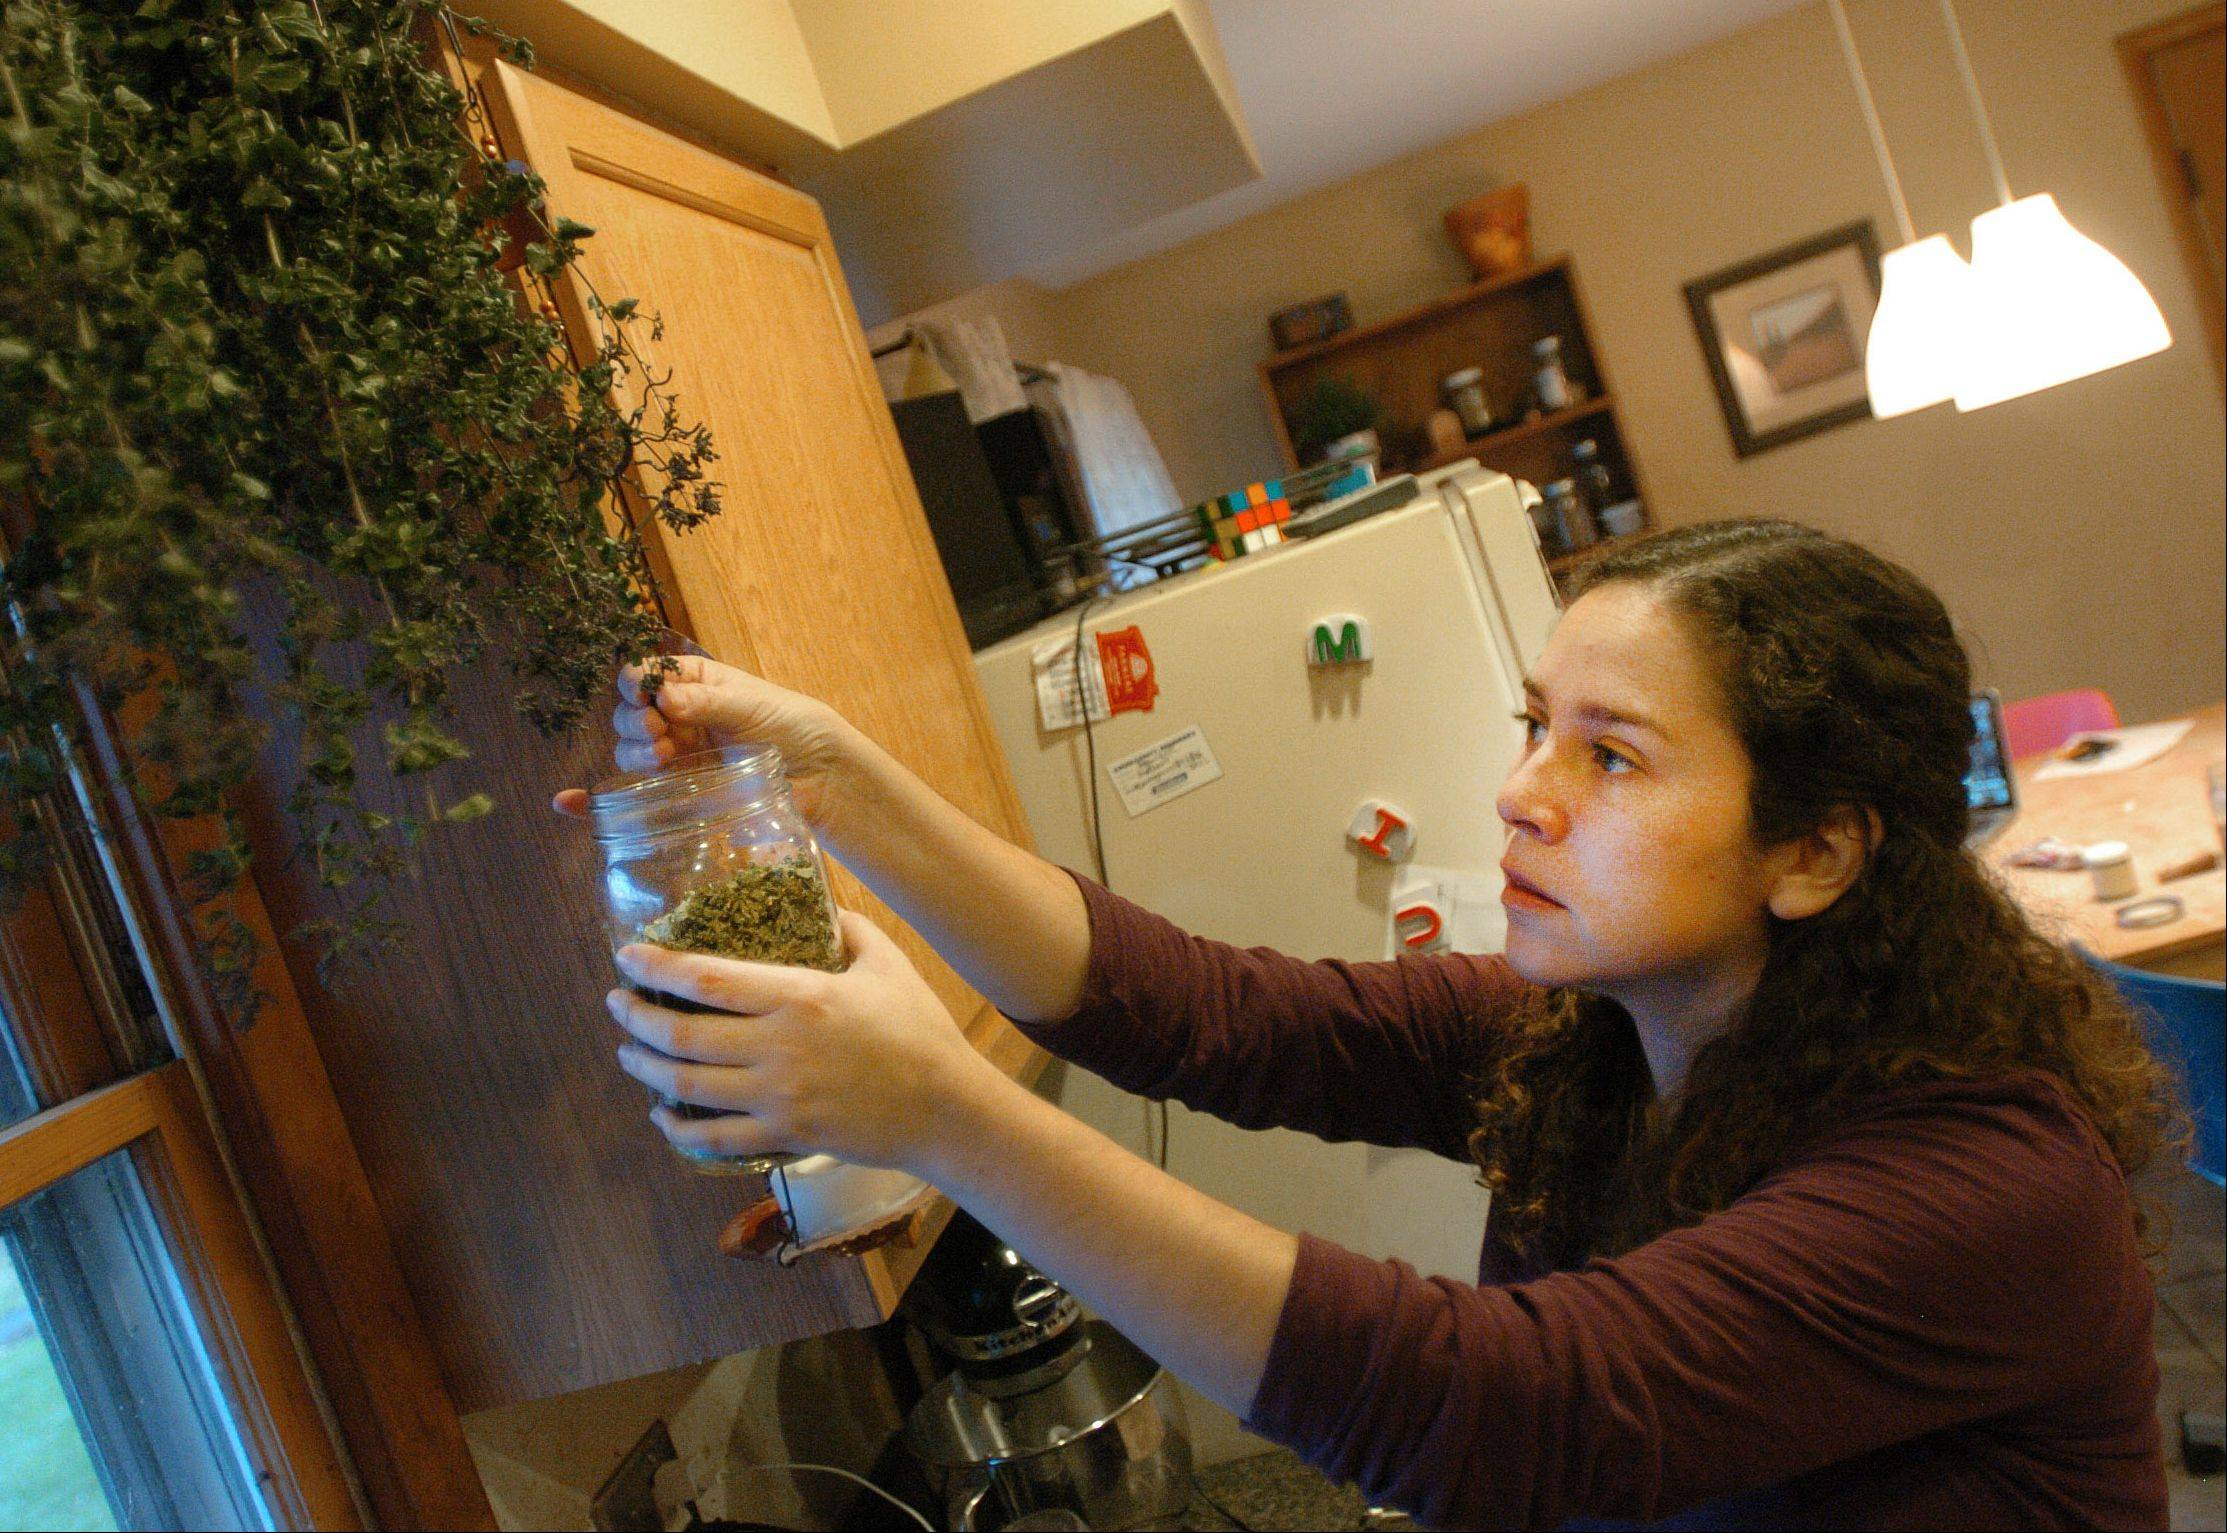 Cote Garceau-Saez pulls dried herbs from her kitchen window.